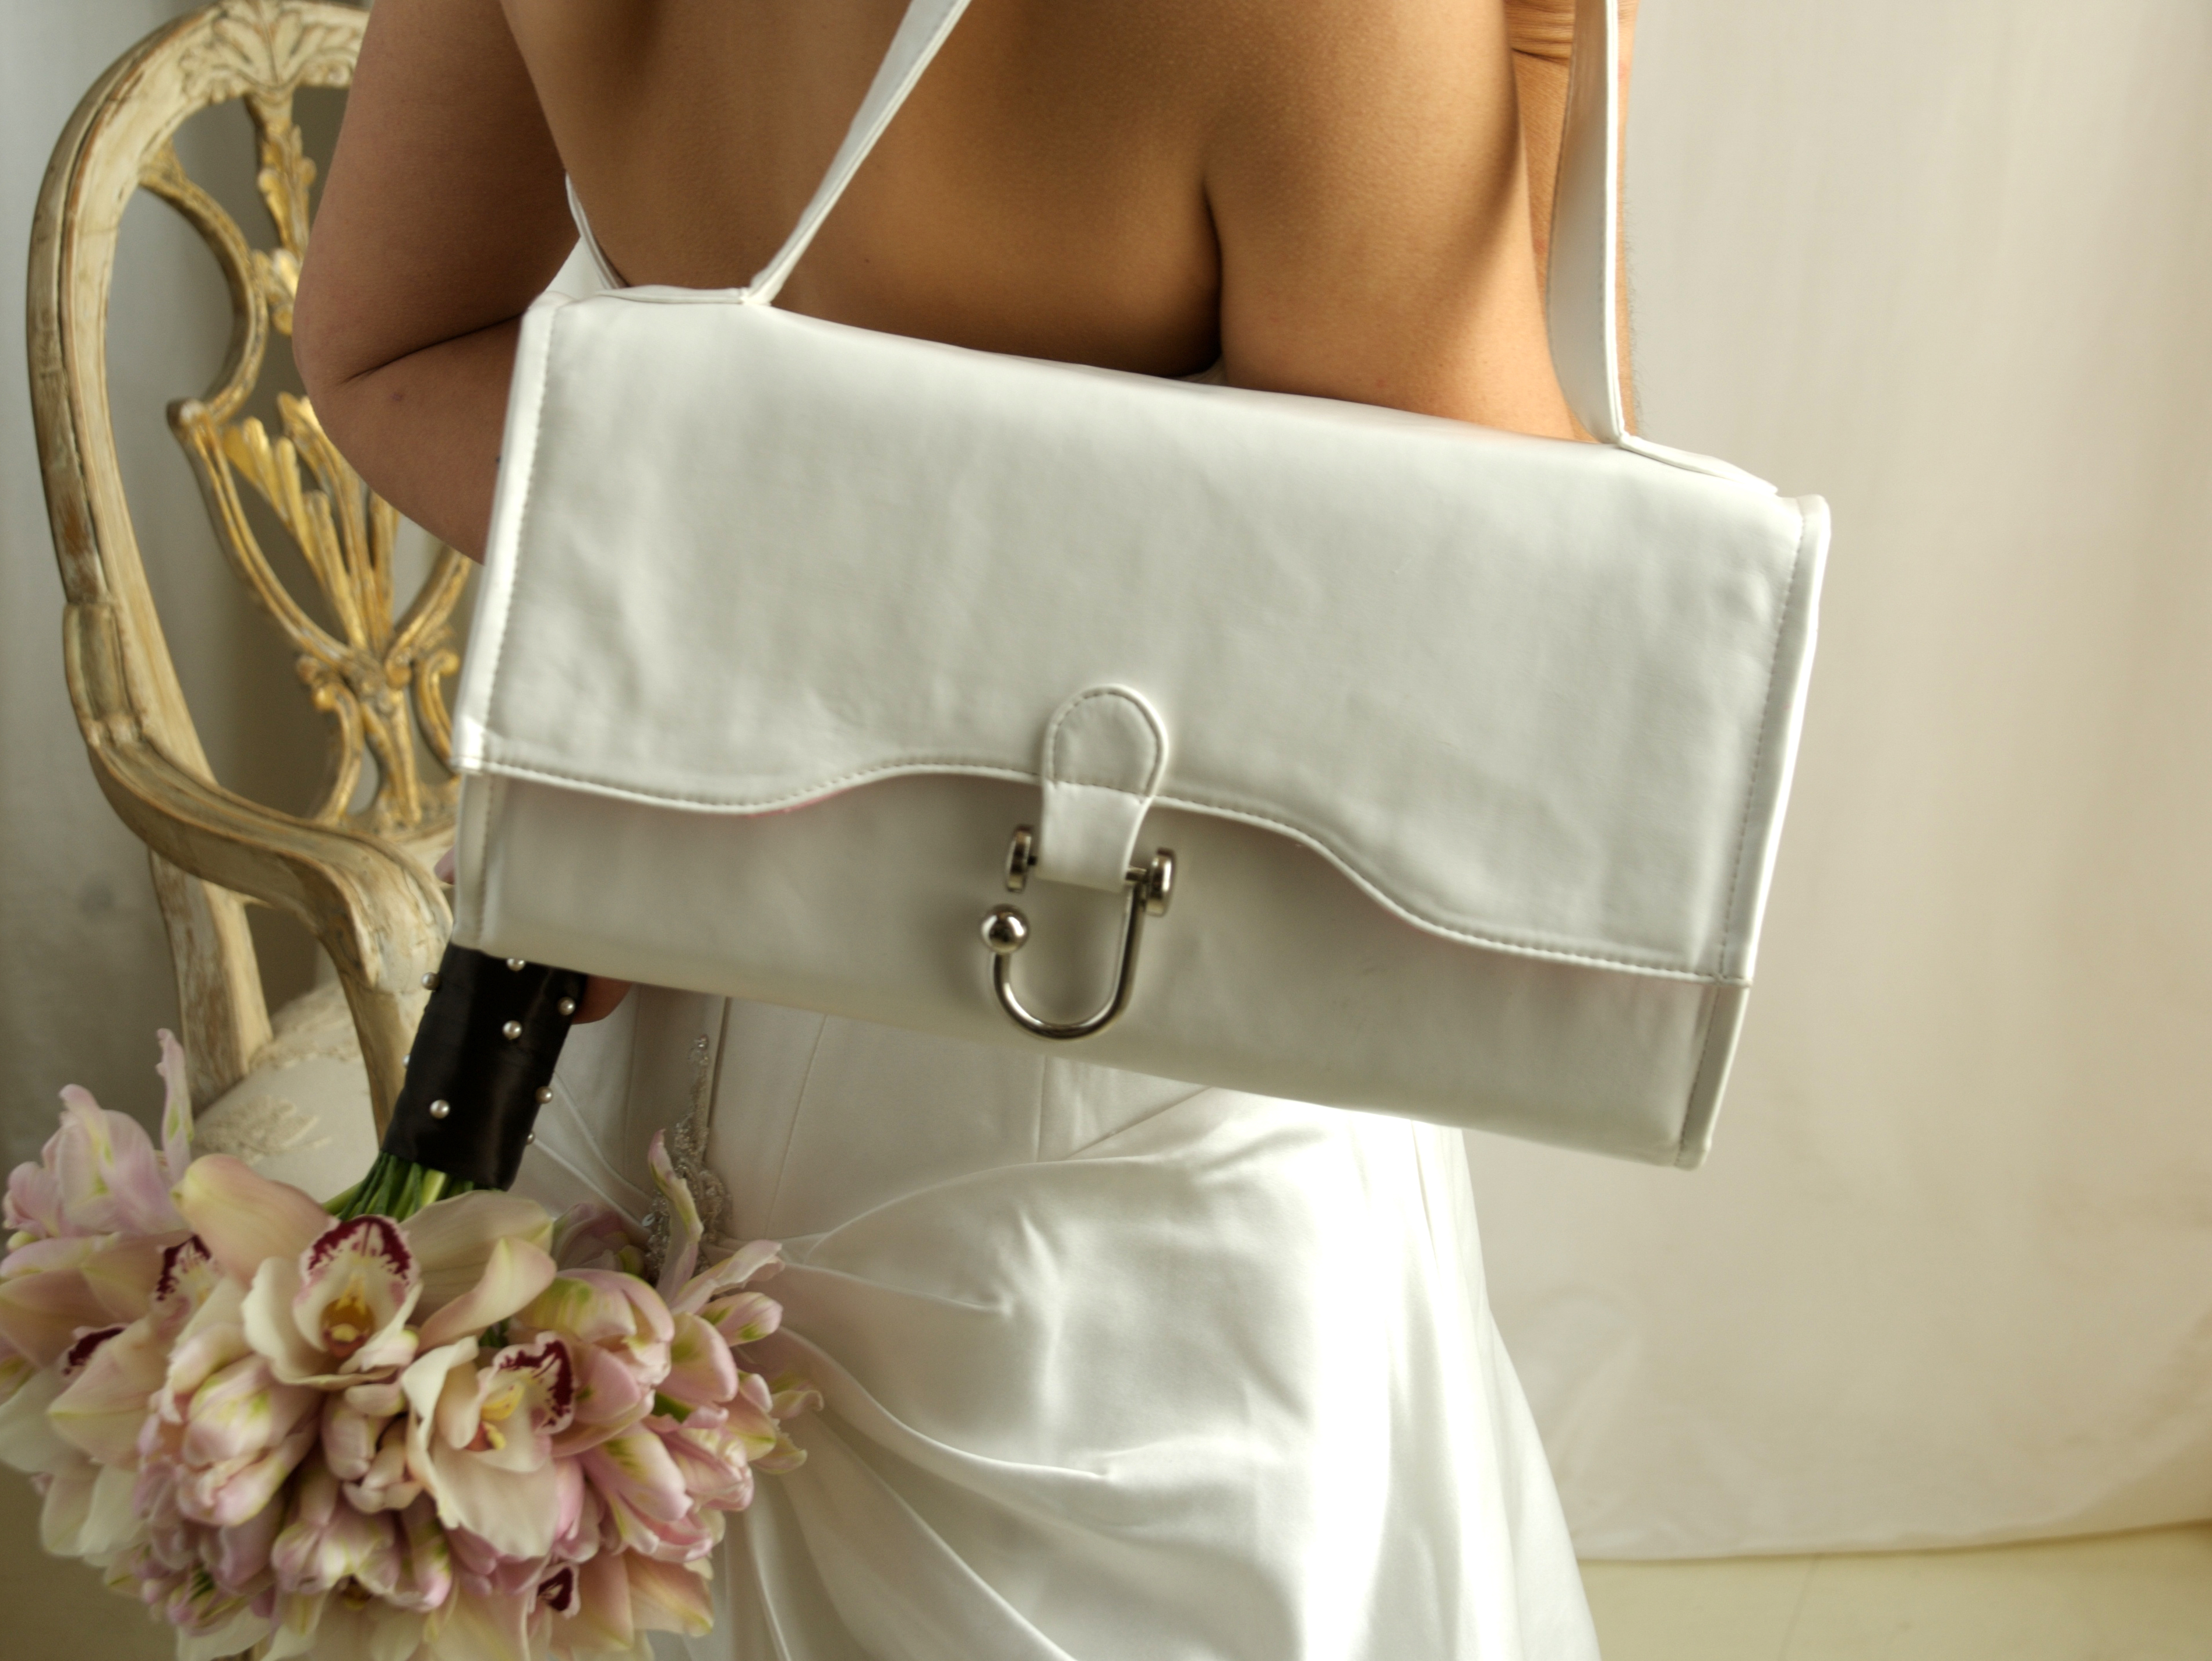 Planning, white, Bride, Purse, Happy, Bag, Prepare, Kit, Plan, Mojuba wedding